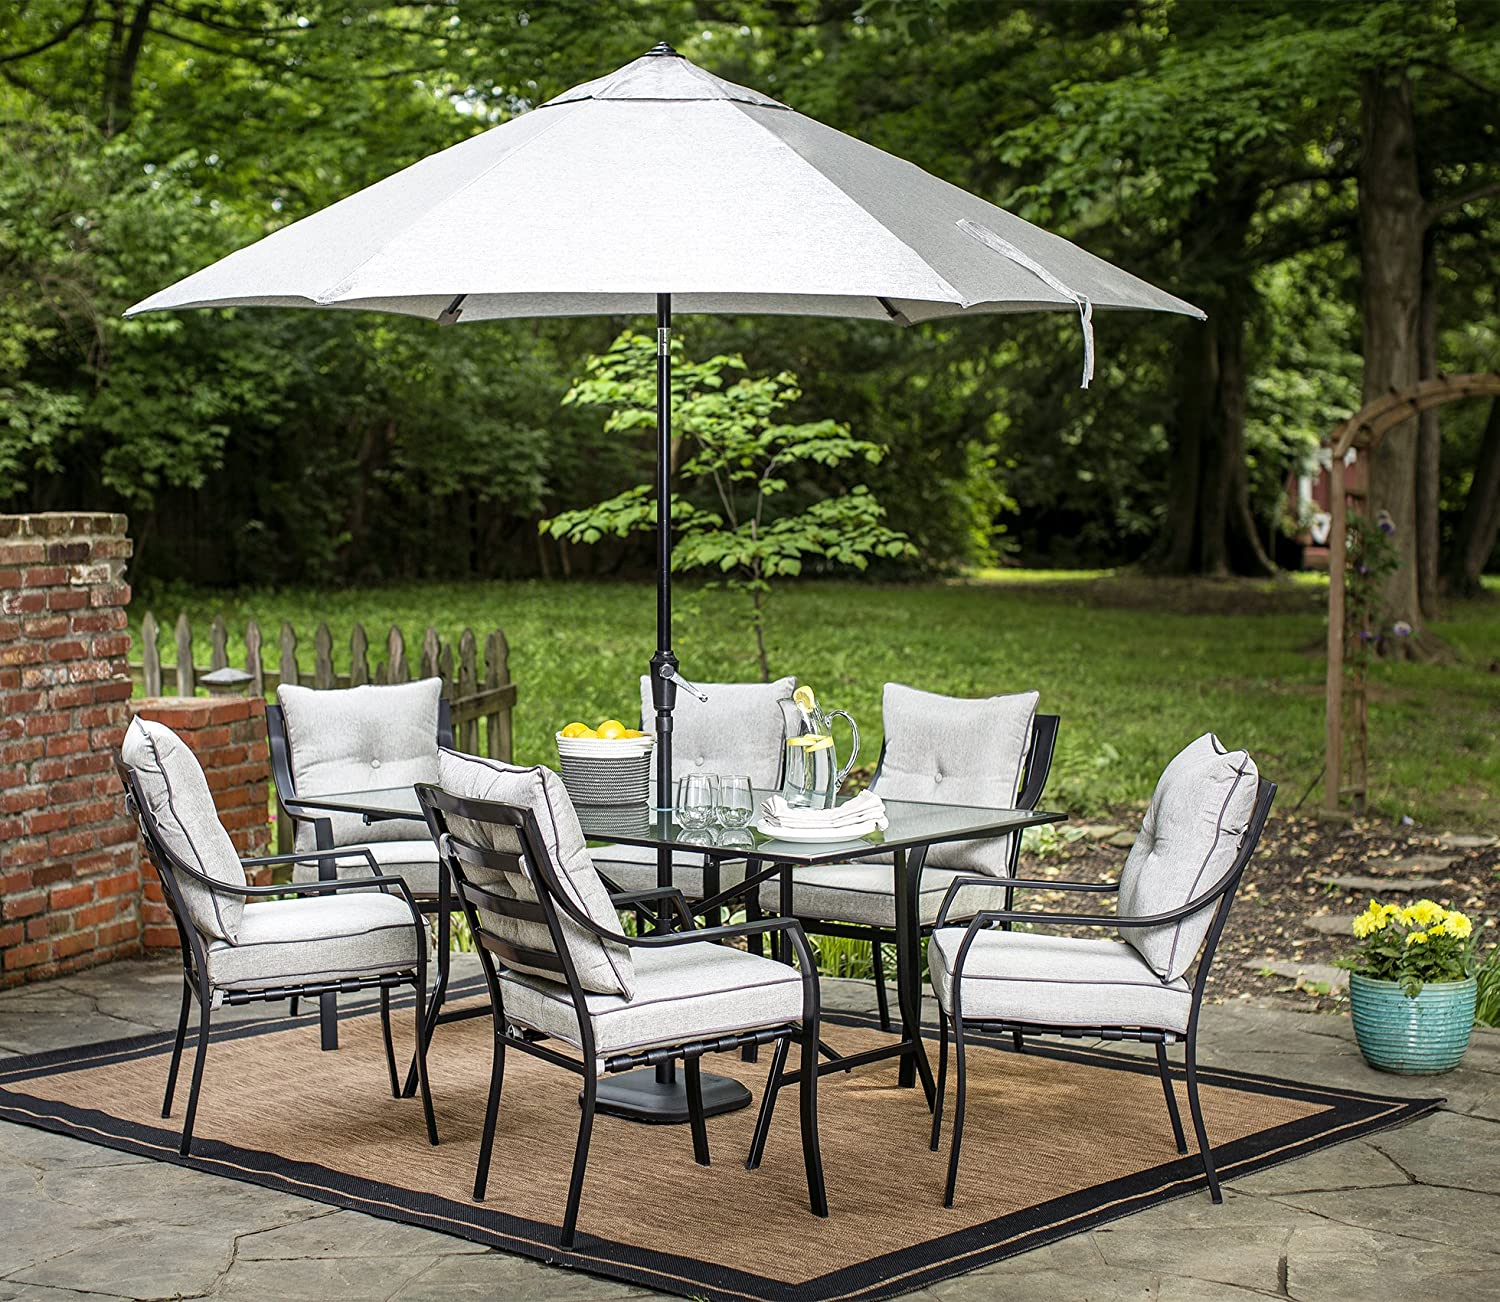 5a0b6d678a60 Amazon.com: Hanover Lavallette 7 Piece Outdoor Dining Set with Table  Umbrella and Base: Garden & Outdoor